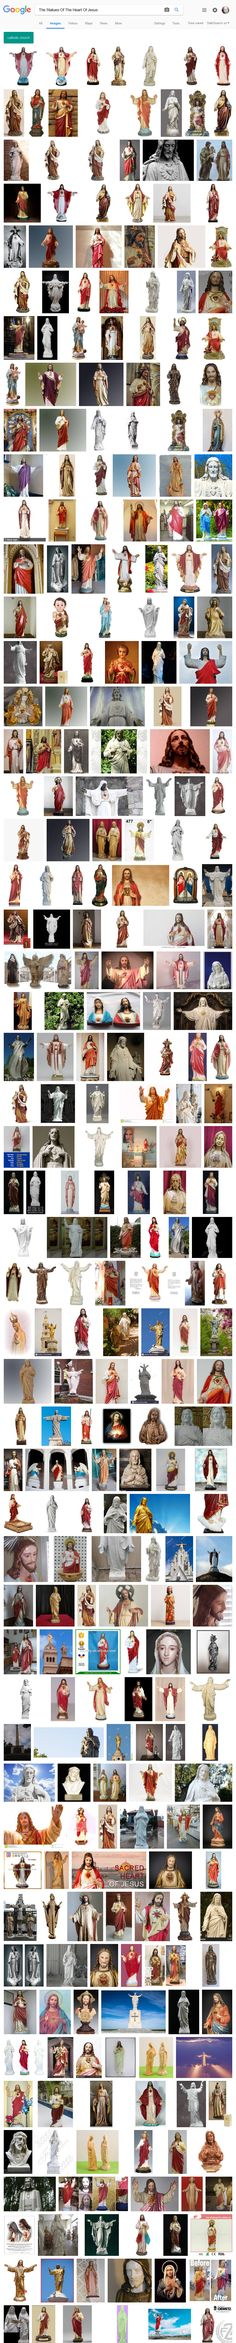 Screenshot: The Statues Of The Heart Of Jesus - Google Search Heart Of Jesus, Statues, Blessed, Peace, Google Search, Effigy, Sobriety, World